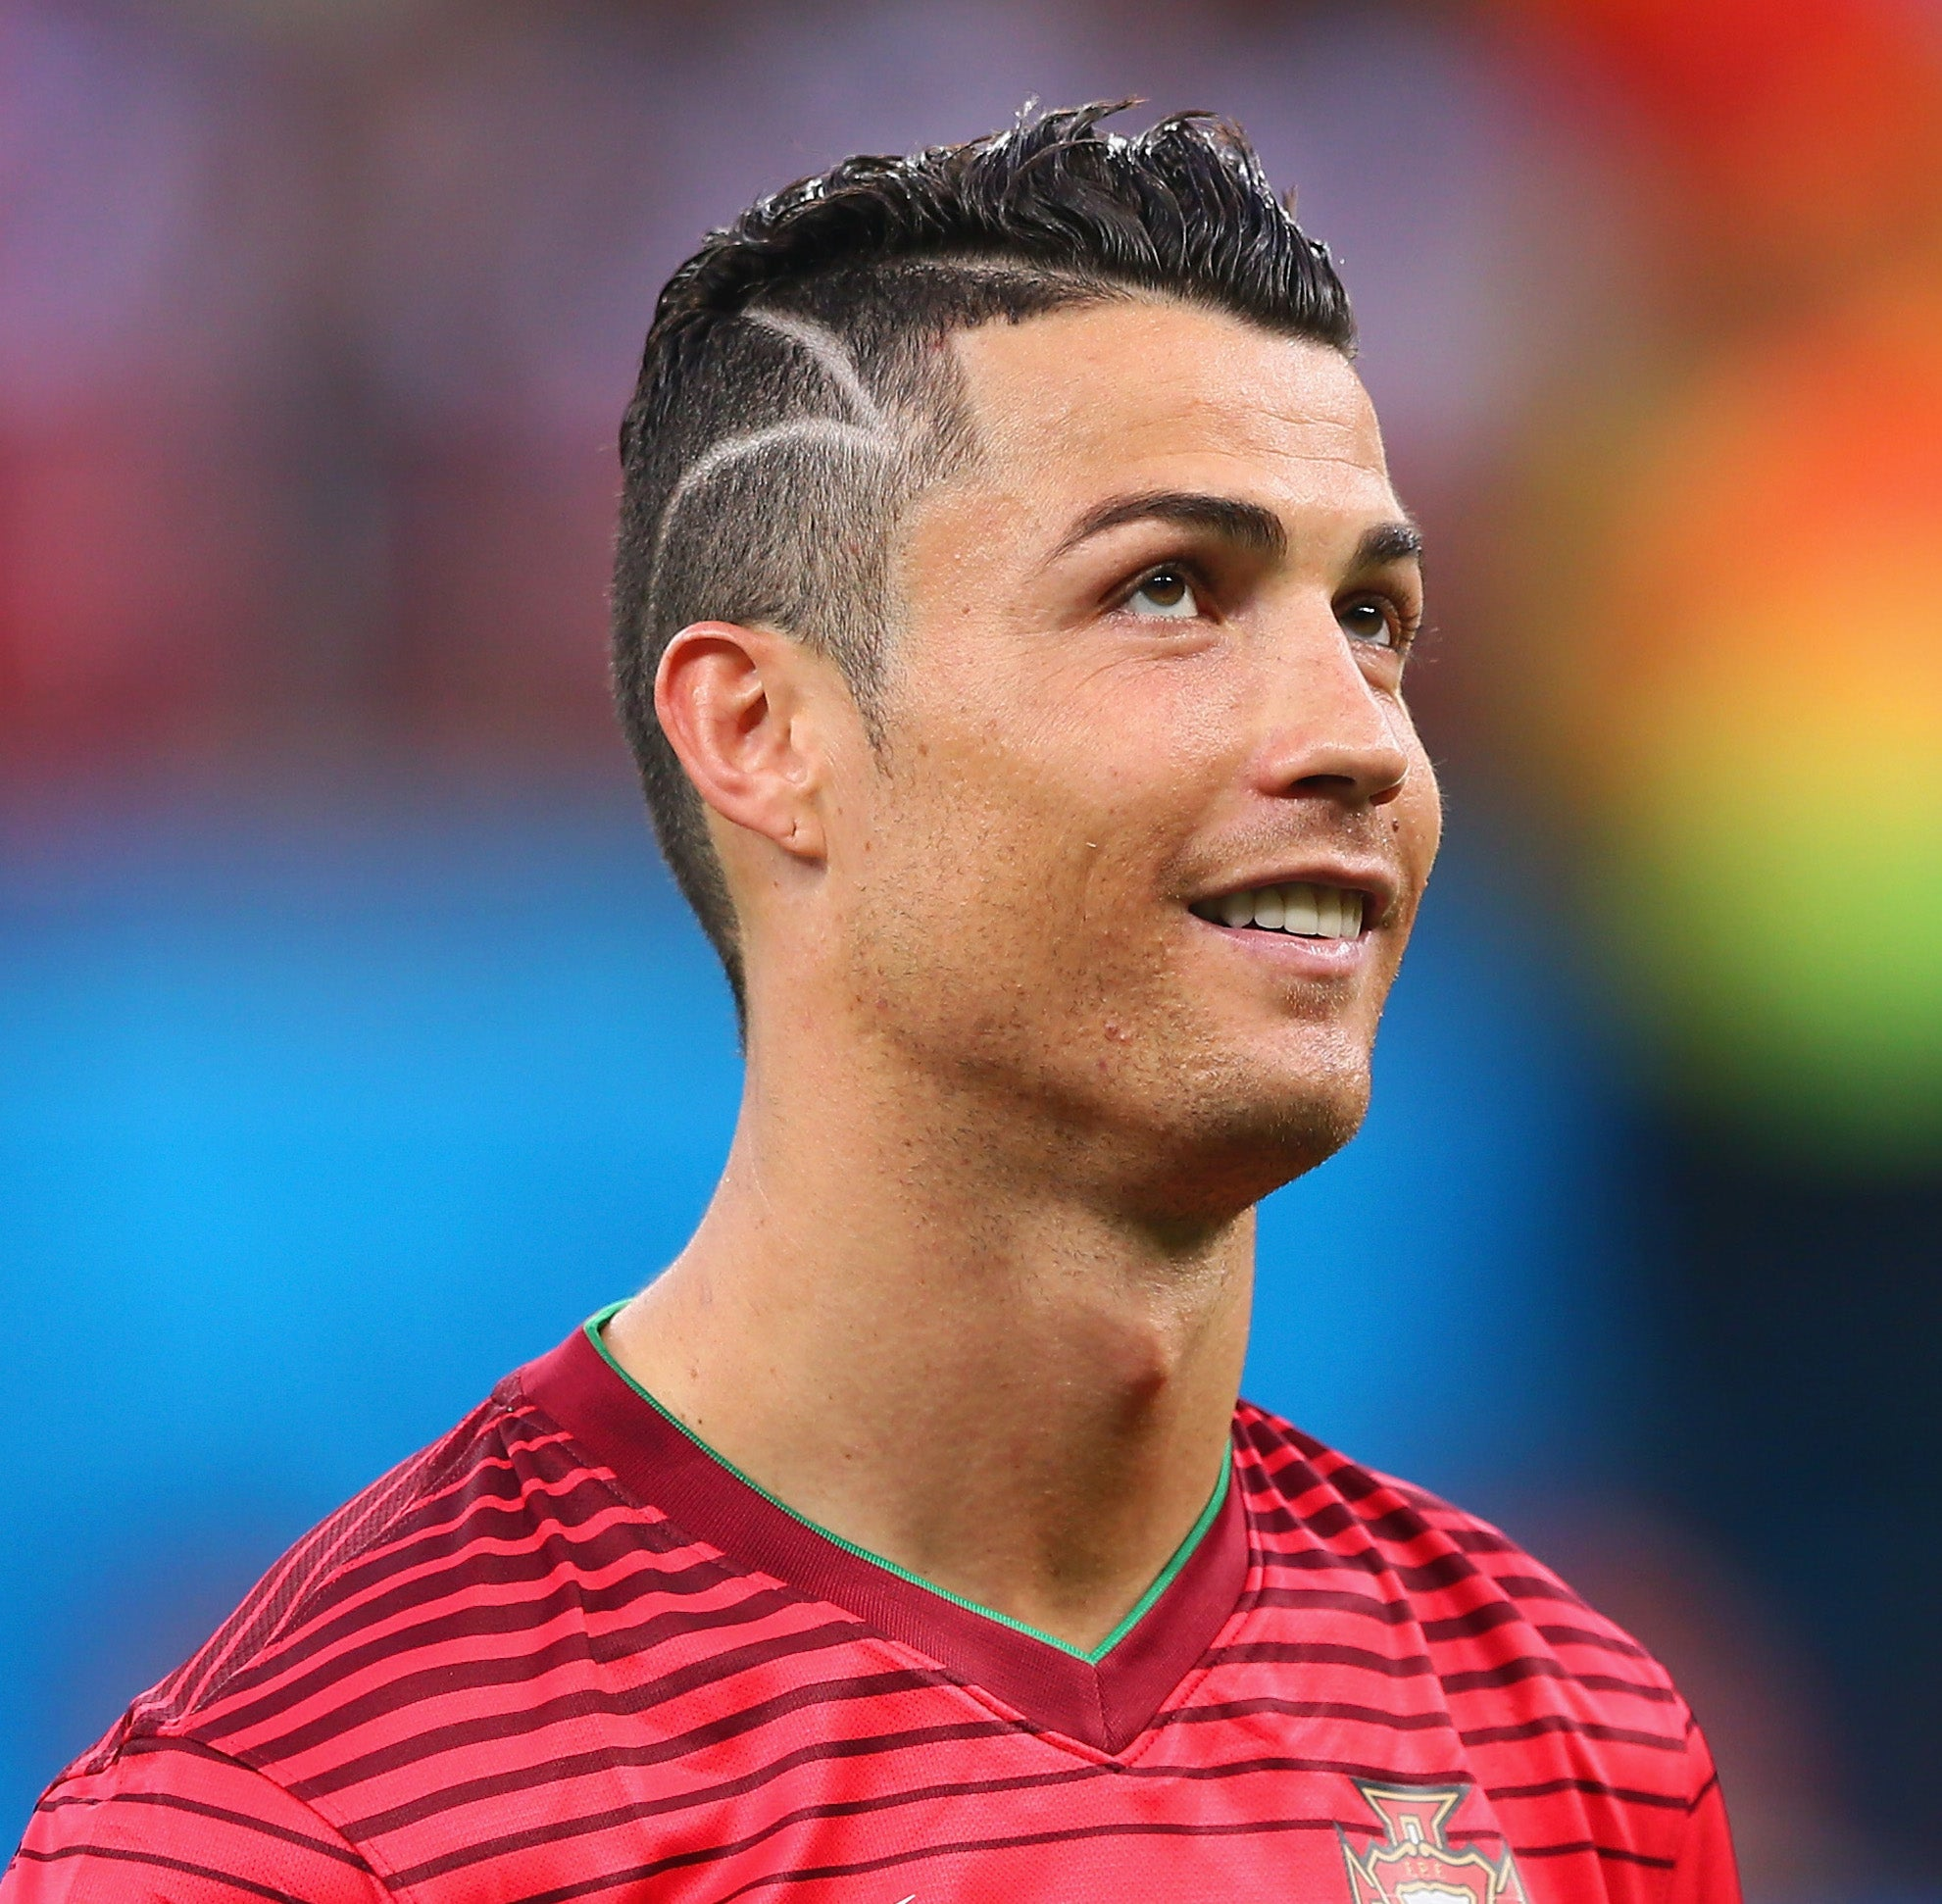 Did Cristiano Ronaldo Really Cut His Hair For A Kid With A